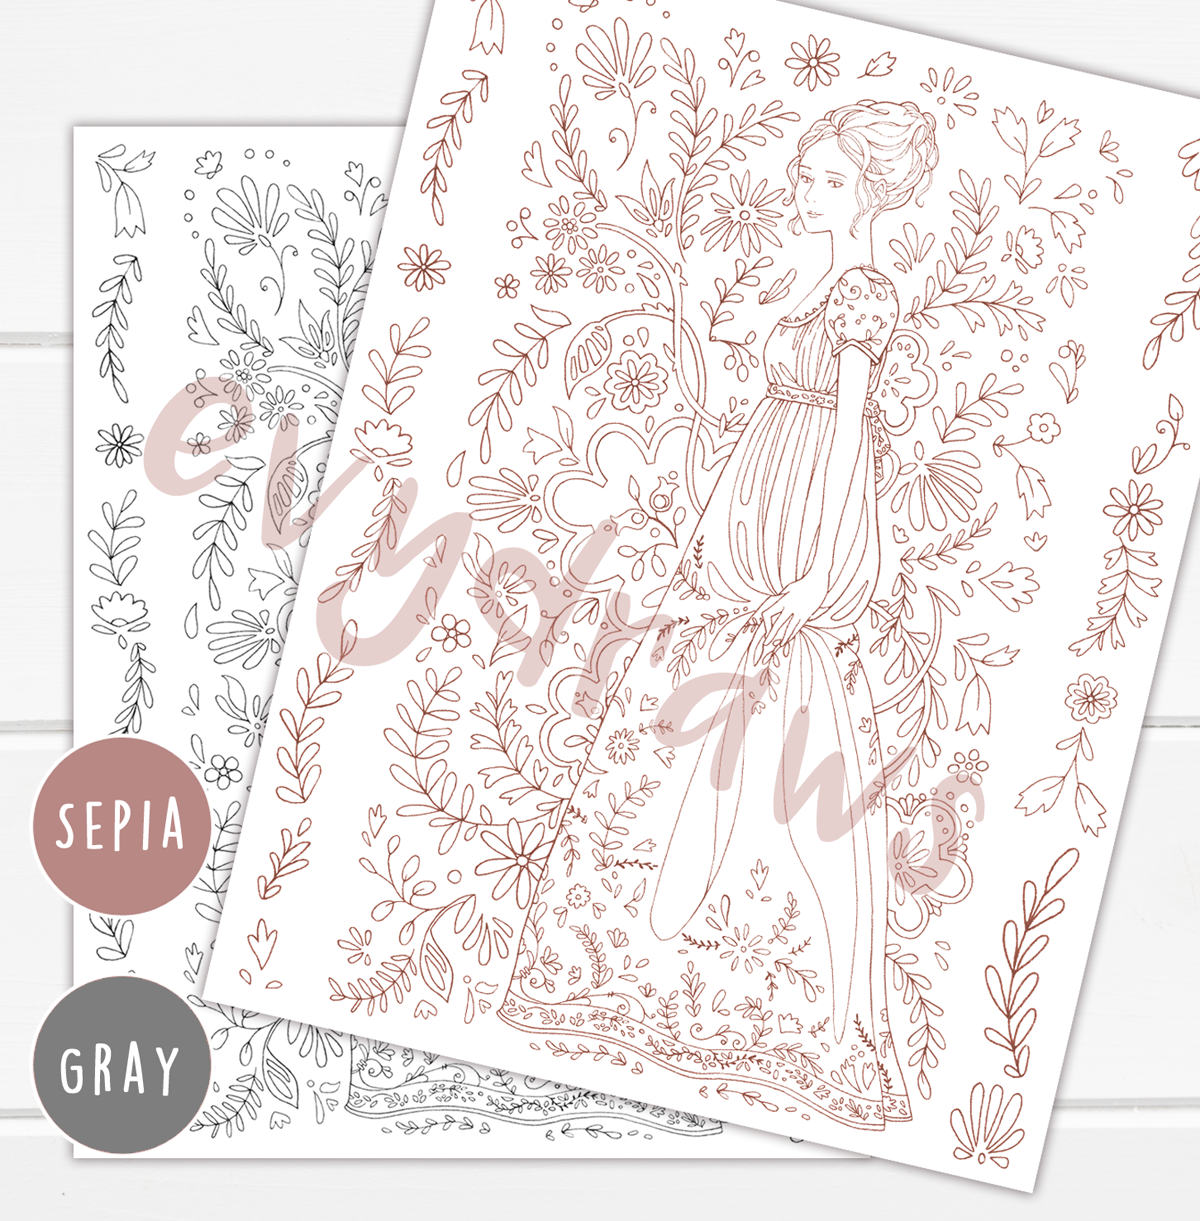 sepia-gray-coloring-page-adults-regency.PNG